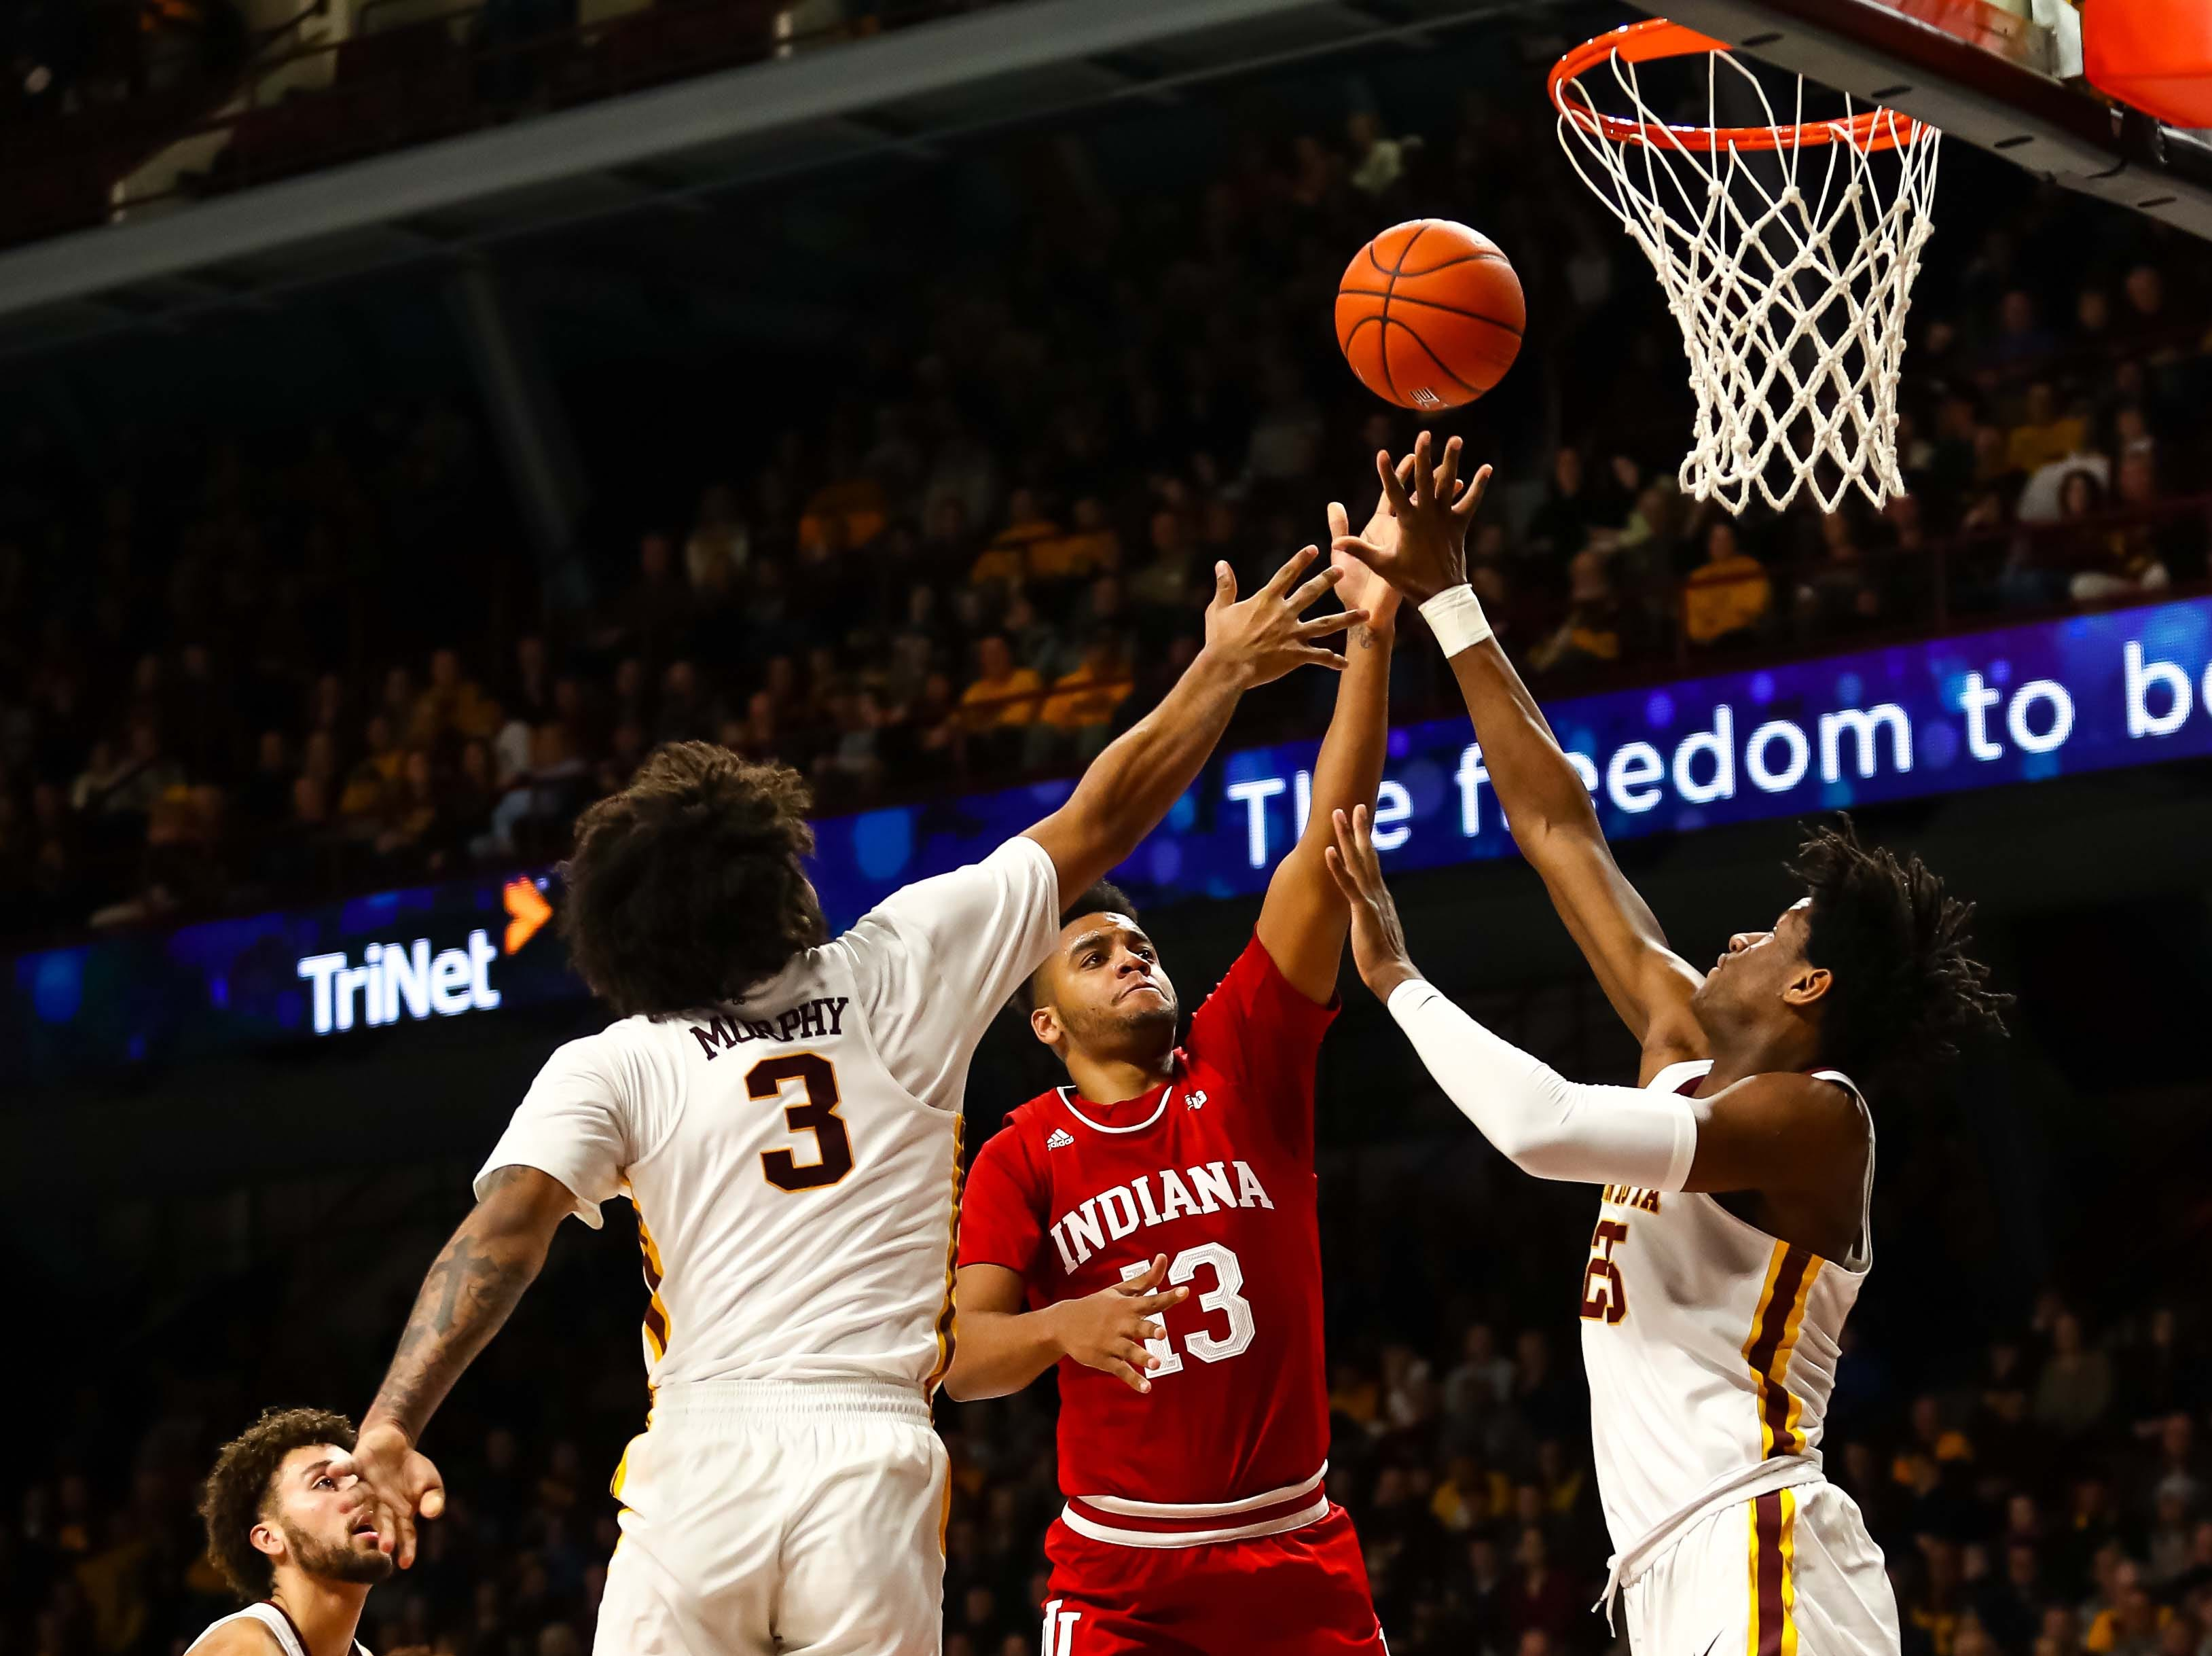 Feb 16, 2019; Minneapolis, MN, USA; Indiana Hoosiers forward Juwan Morgan (13) goes up for a shot while Minnesota Golden Gophers forward Jordan Murphy (3) and center Daniel Oturu (25) defend in the second half at Williams Arena. The Minnesota Golden Gophers defeatd the Indiana Hoosiers 84-63. Mandatory Credit: David Berding-USA TODAY Sports